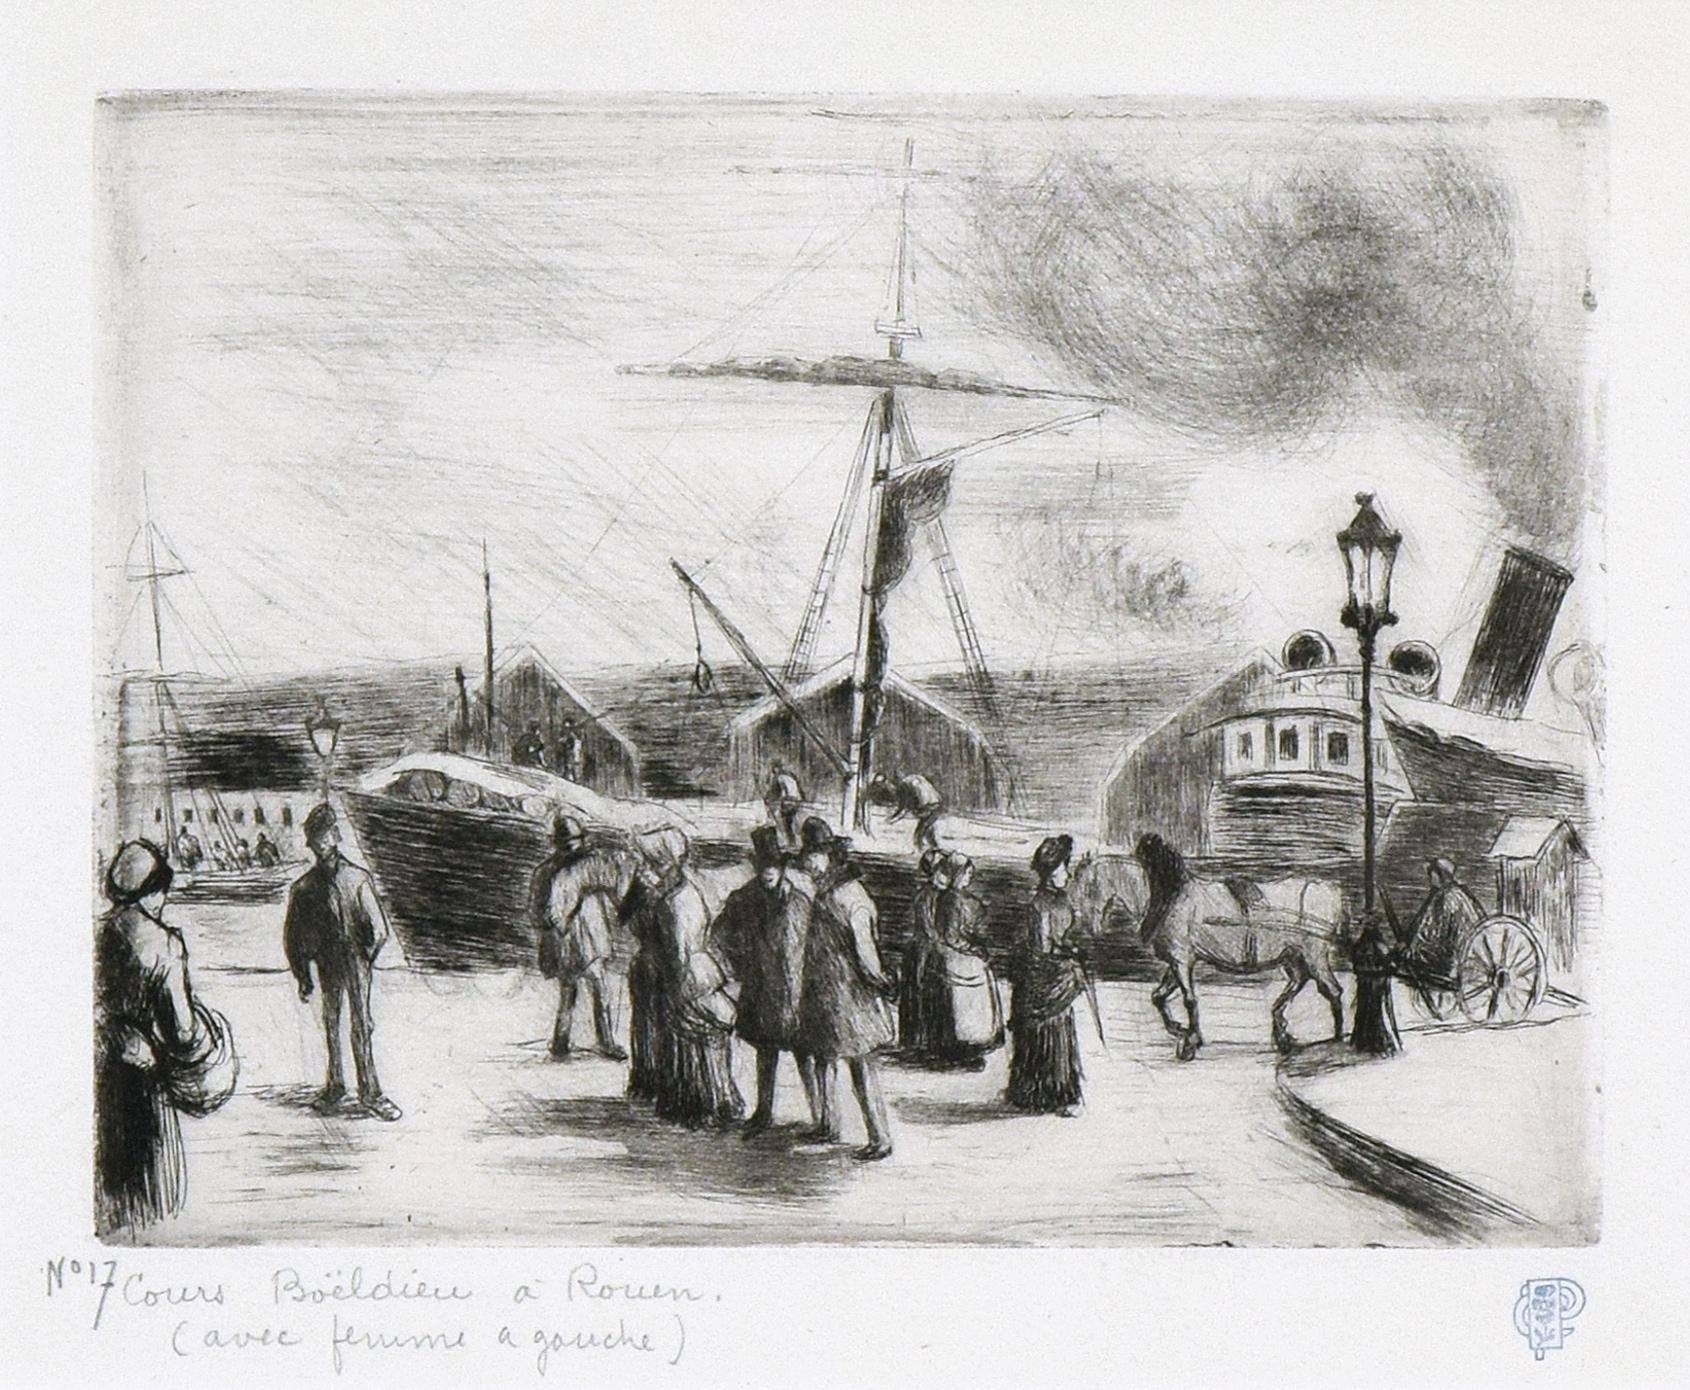 Cours Boieldieu, à Rouen by CAMILLE PISSARRO - Etching by Impressionist Artist